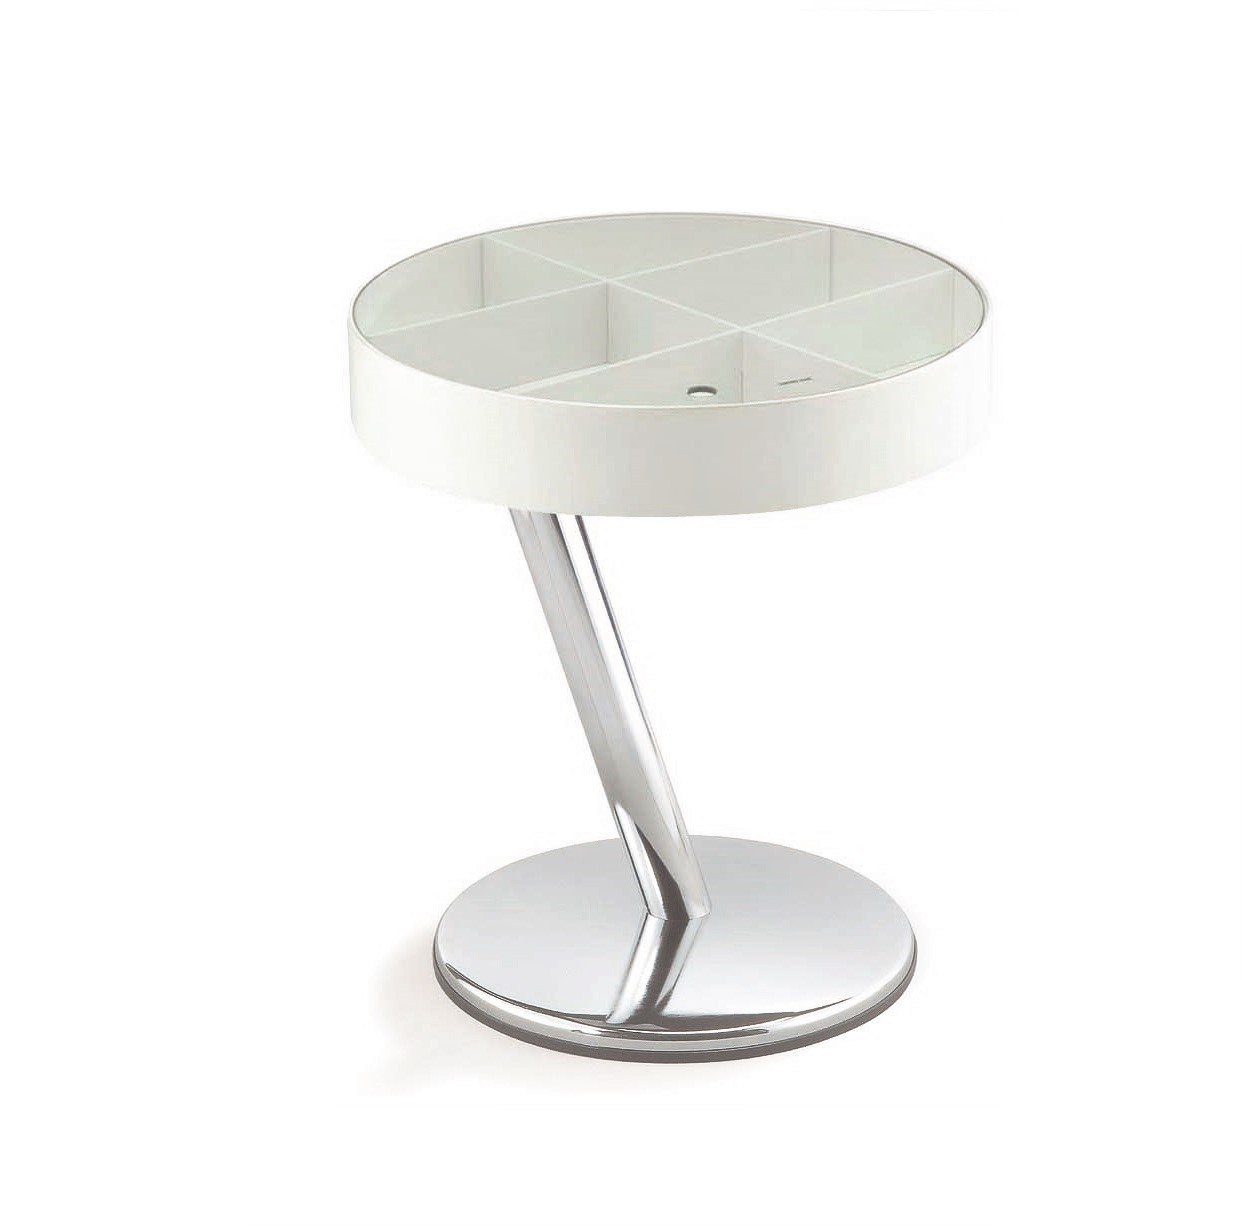 New Spec Modern End Table with Glass Top, White